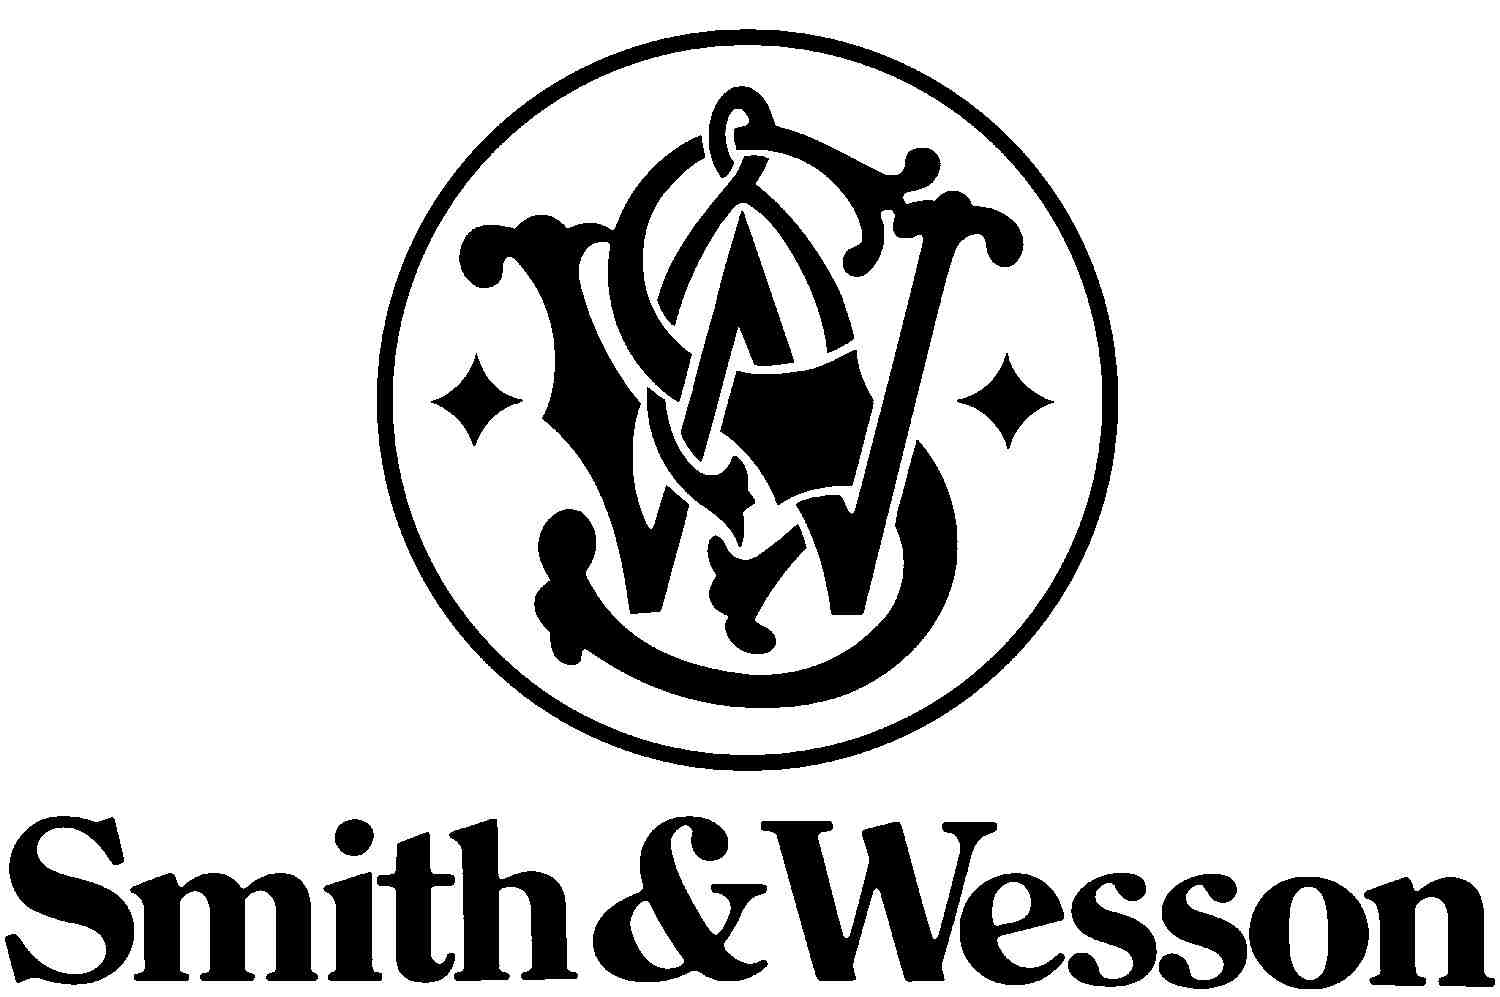 smith wesson holding corporation essay Form 8k, securities & exchange commission (2006) - filed by smith & wesson holding corporation on september 19, 2006 pursuant to section 13 or 15(d) of the sec act of 1934 accessed from wwwfreeedgarcomon november 23, 2006.